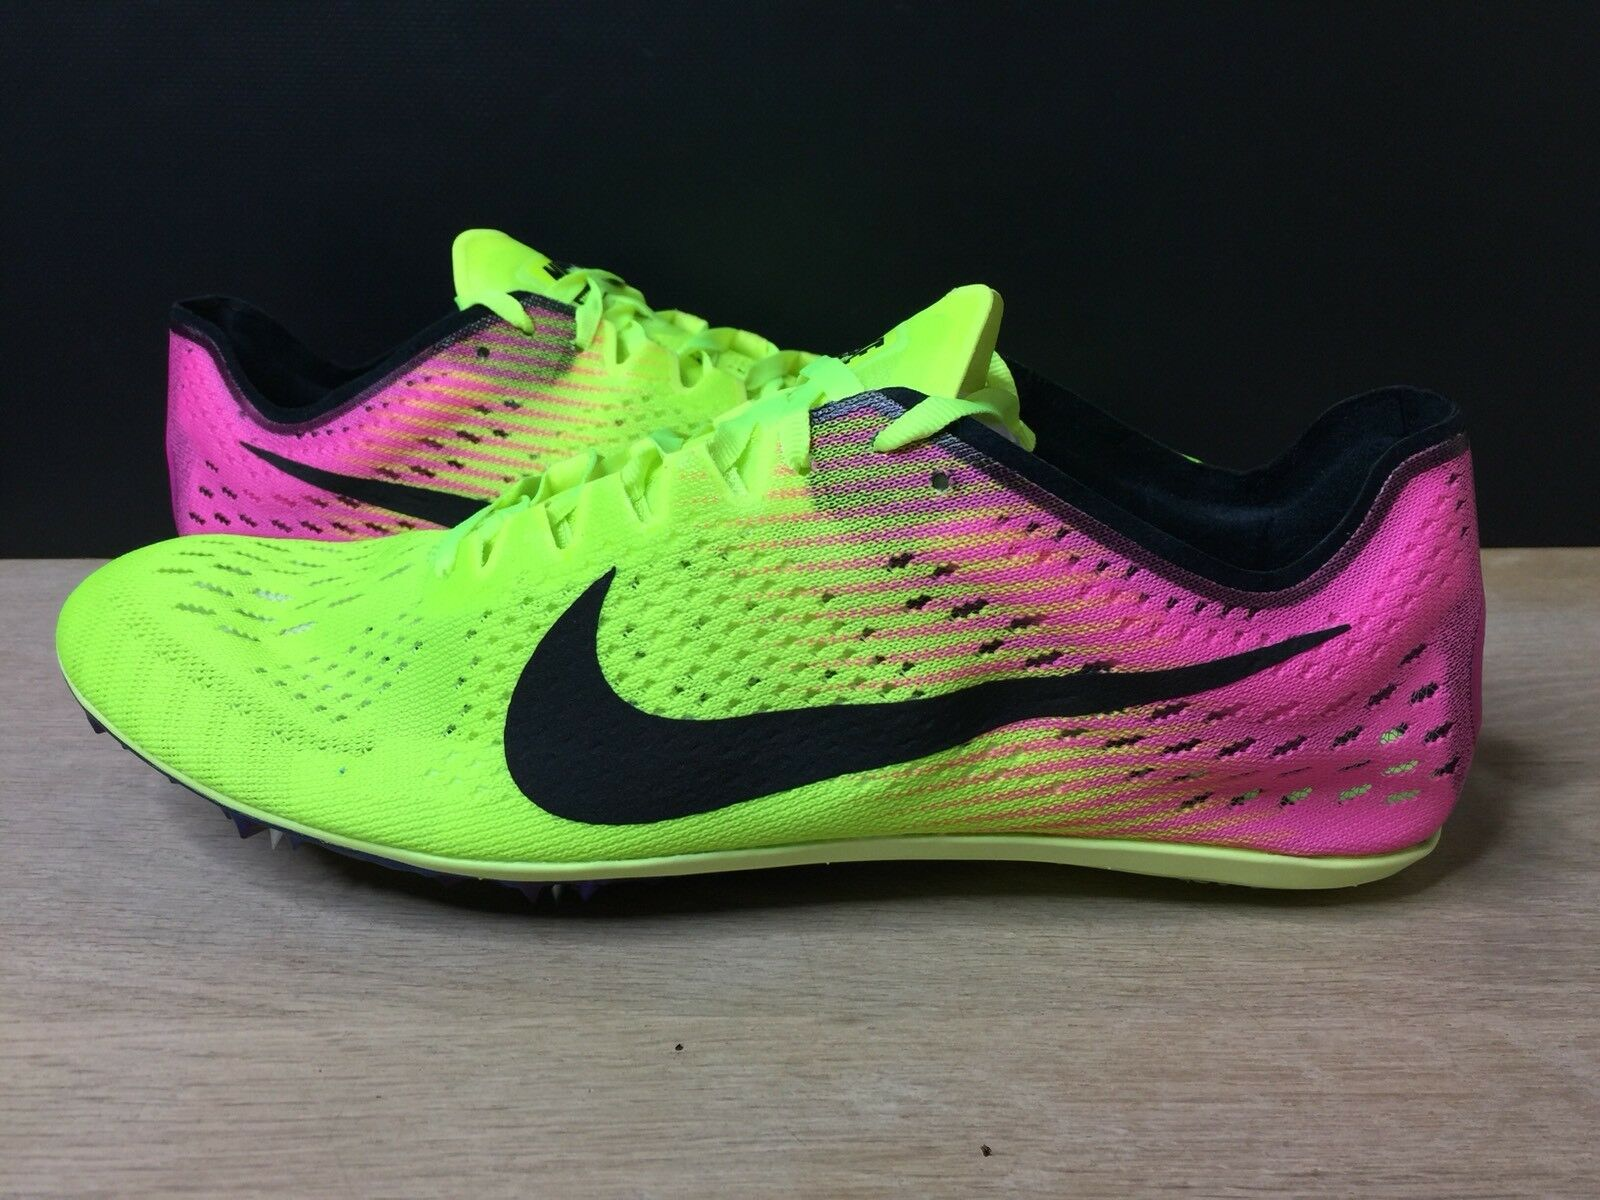 Nike Zoom Victory Elite 2 Distance Track Spikes Shoes Volt 835998-999 Size 11